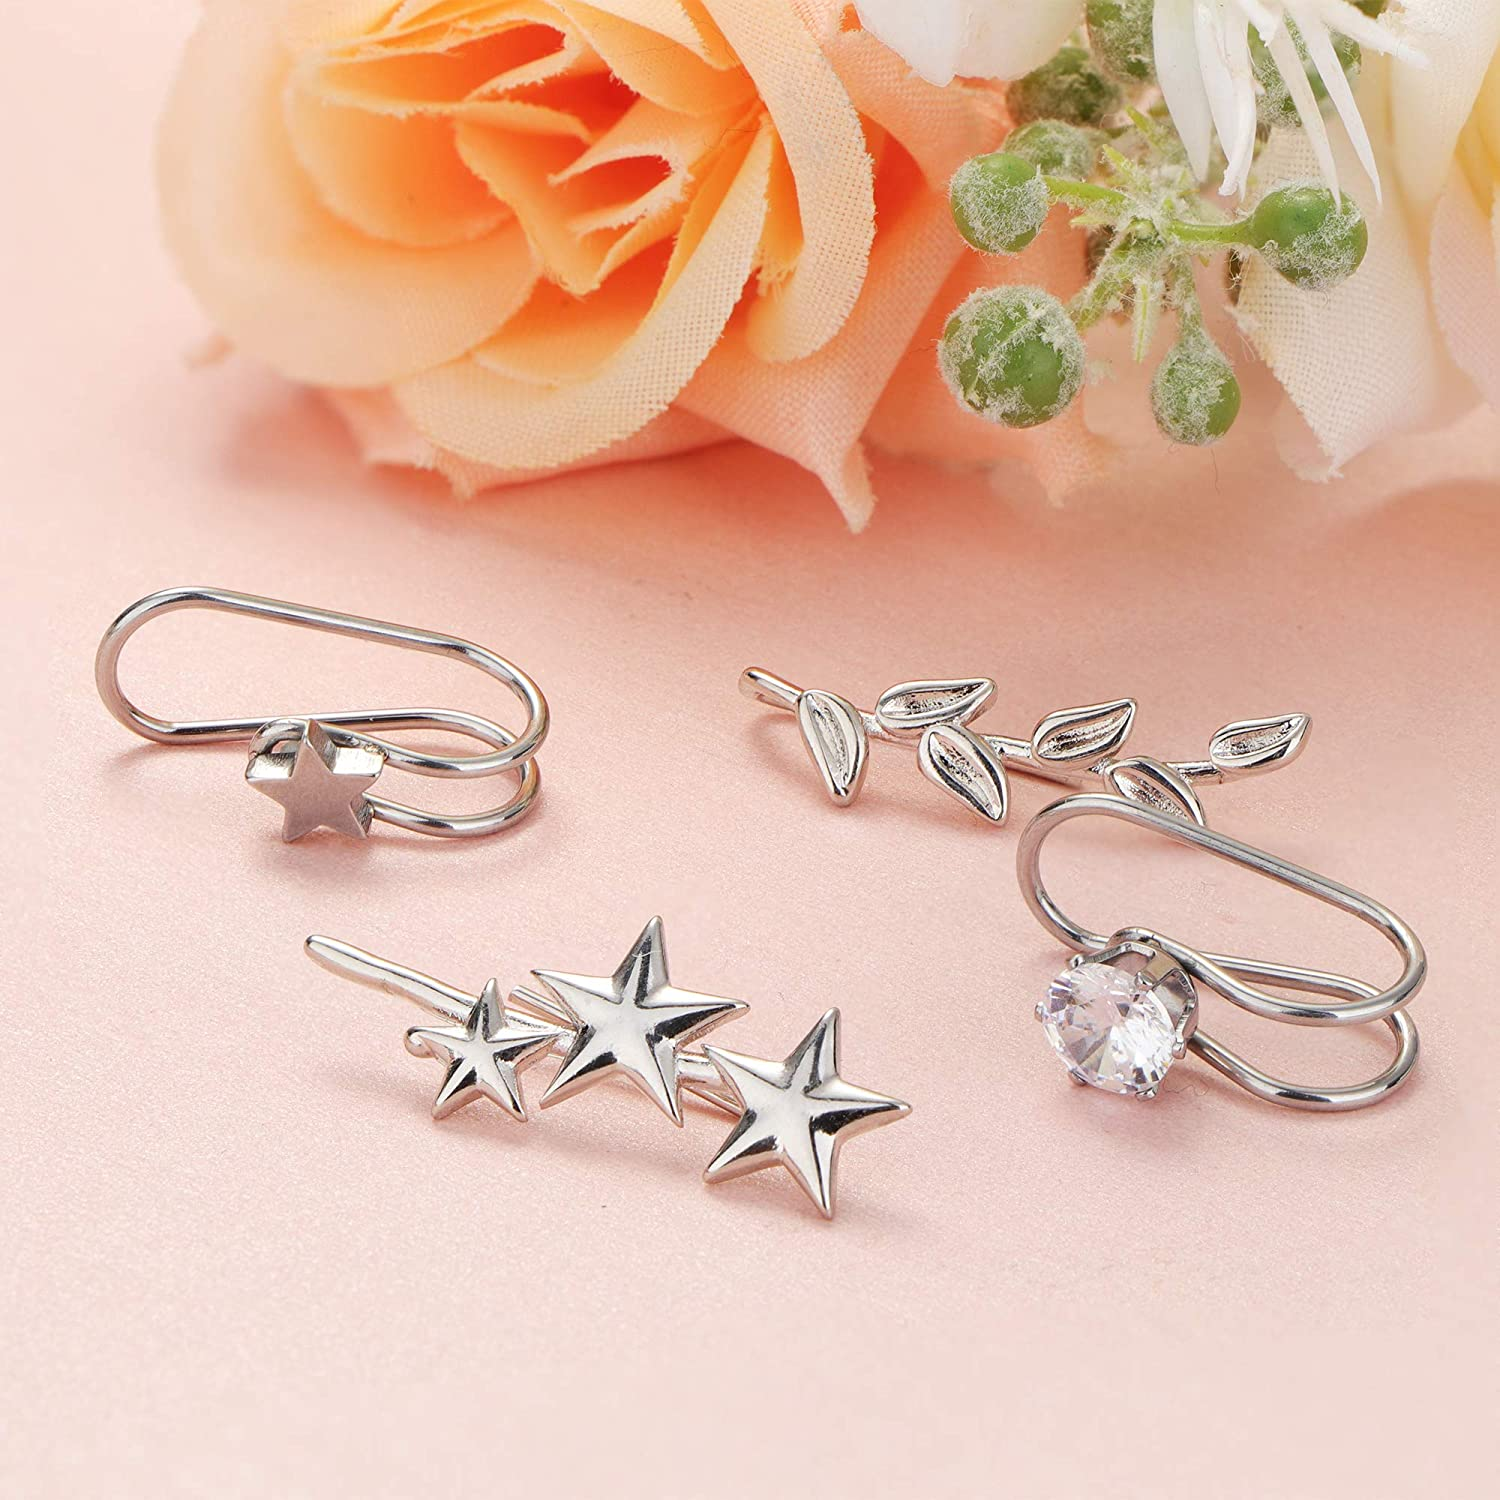 LOYALLOOK 20PCS Ear Cuff for Women Stainless Steel Non-Piercing Ears Helix Cartilage Clip On Wrap Earring Ear Cuff Set for Women Men